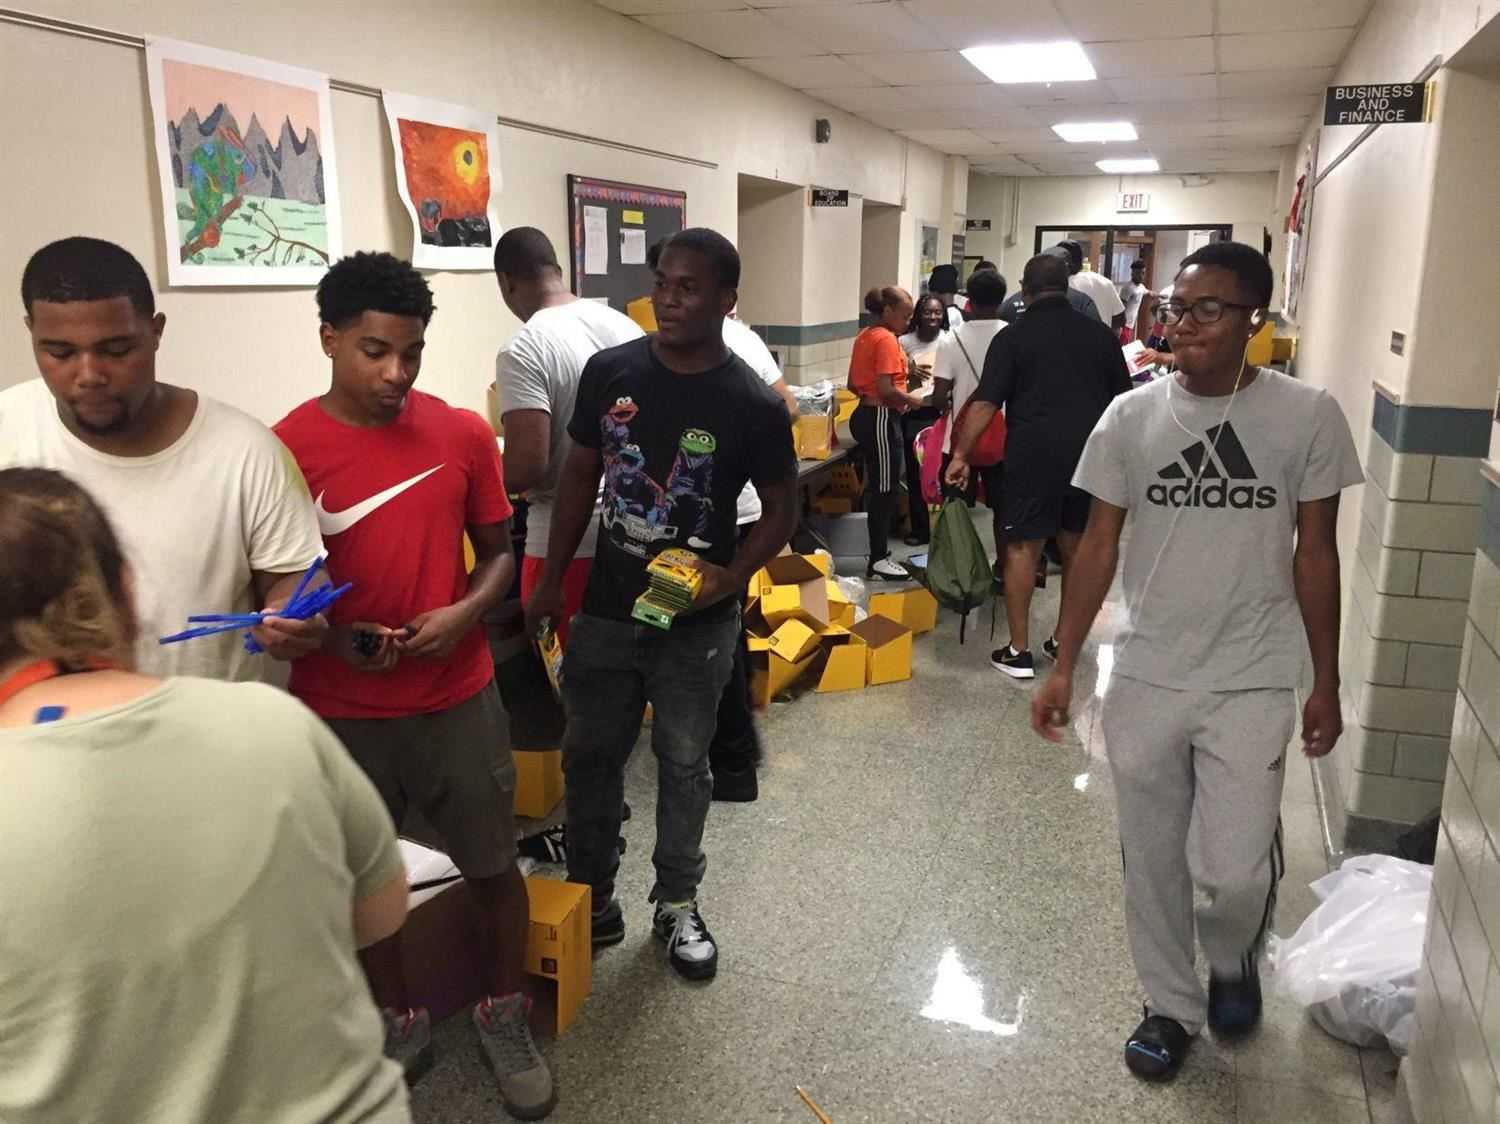 St. Louis Post Dispatch: Lake Saint Louis couple provides 750 backpacks filled with supplies for area students